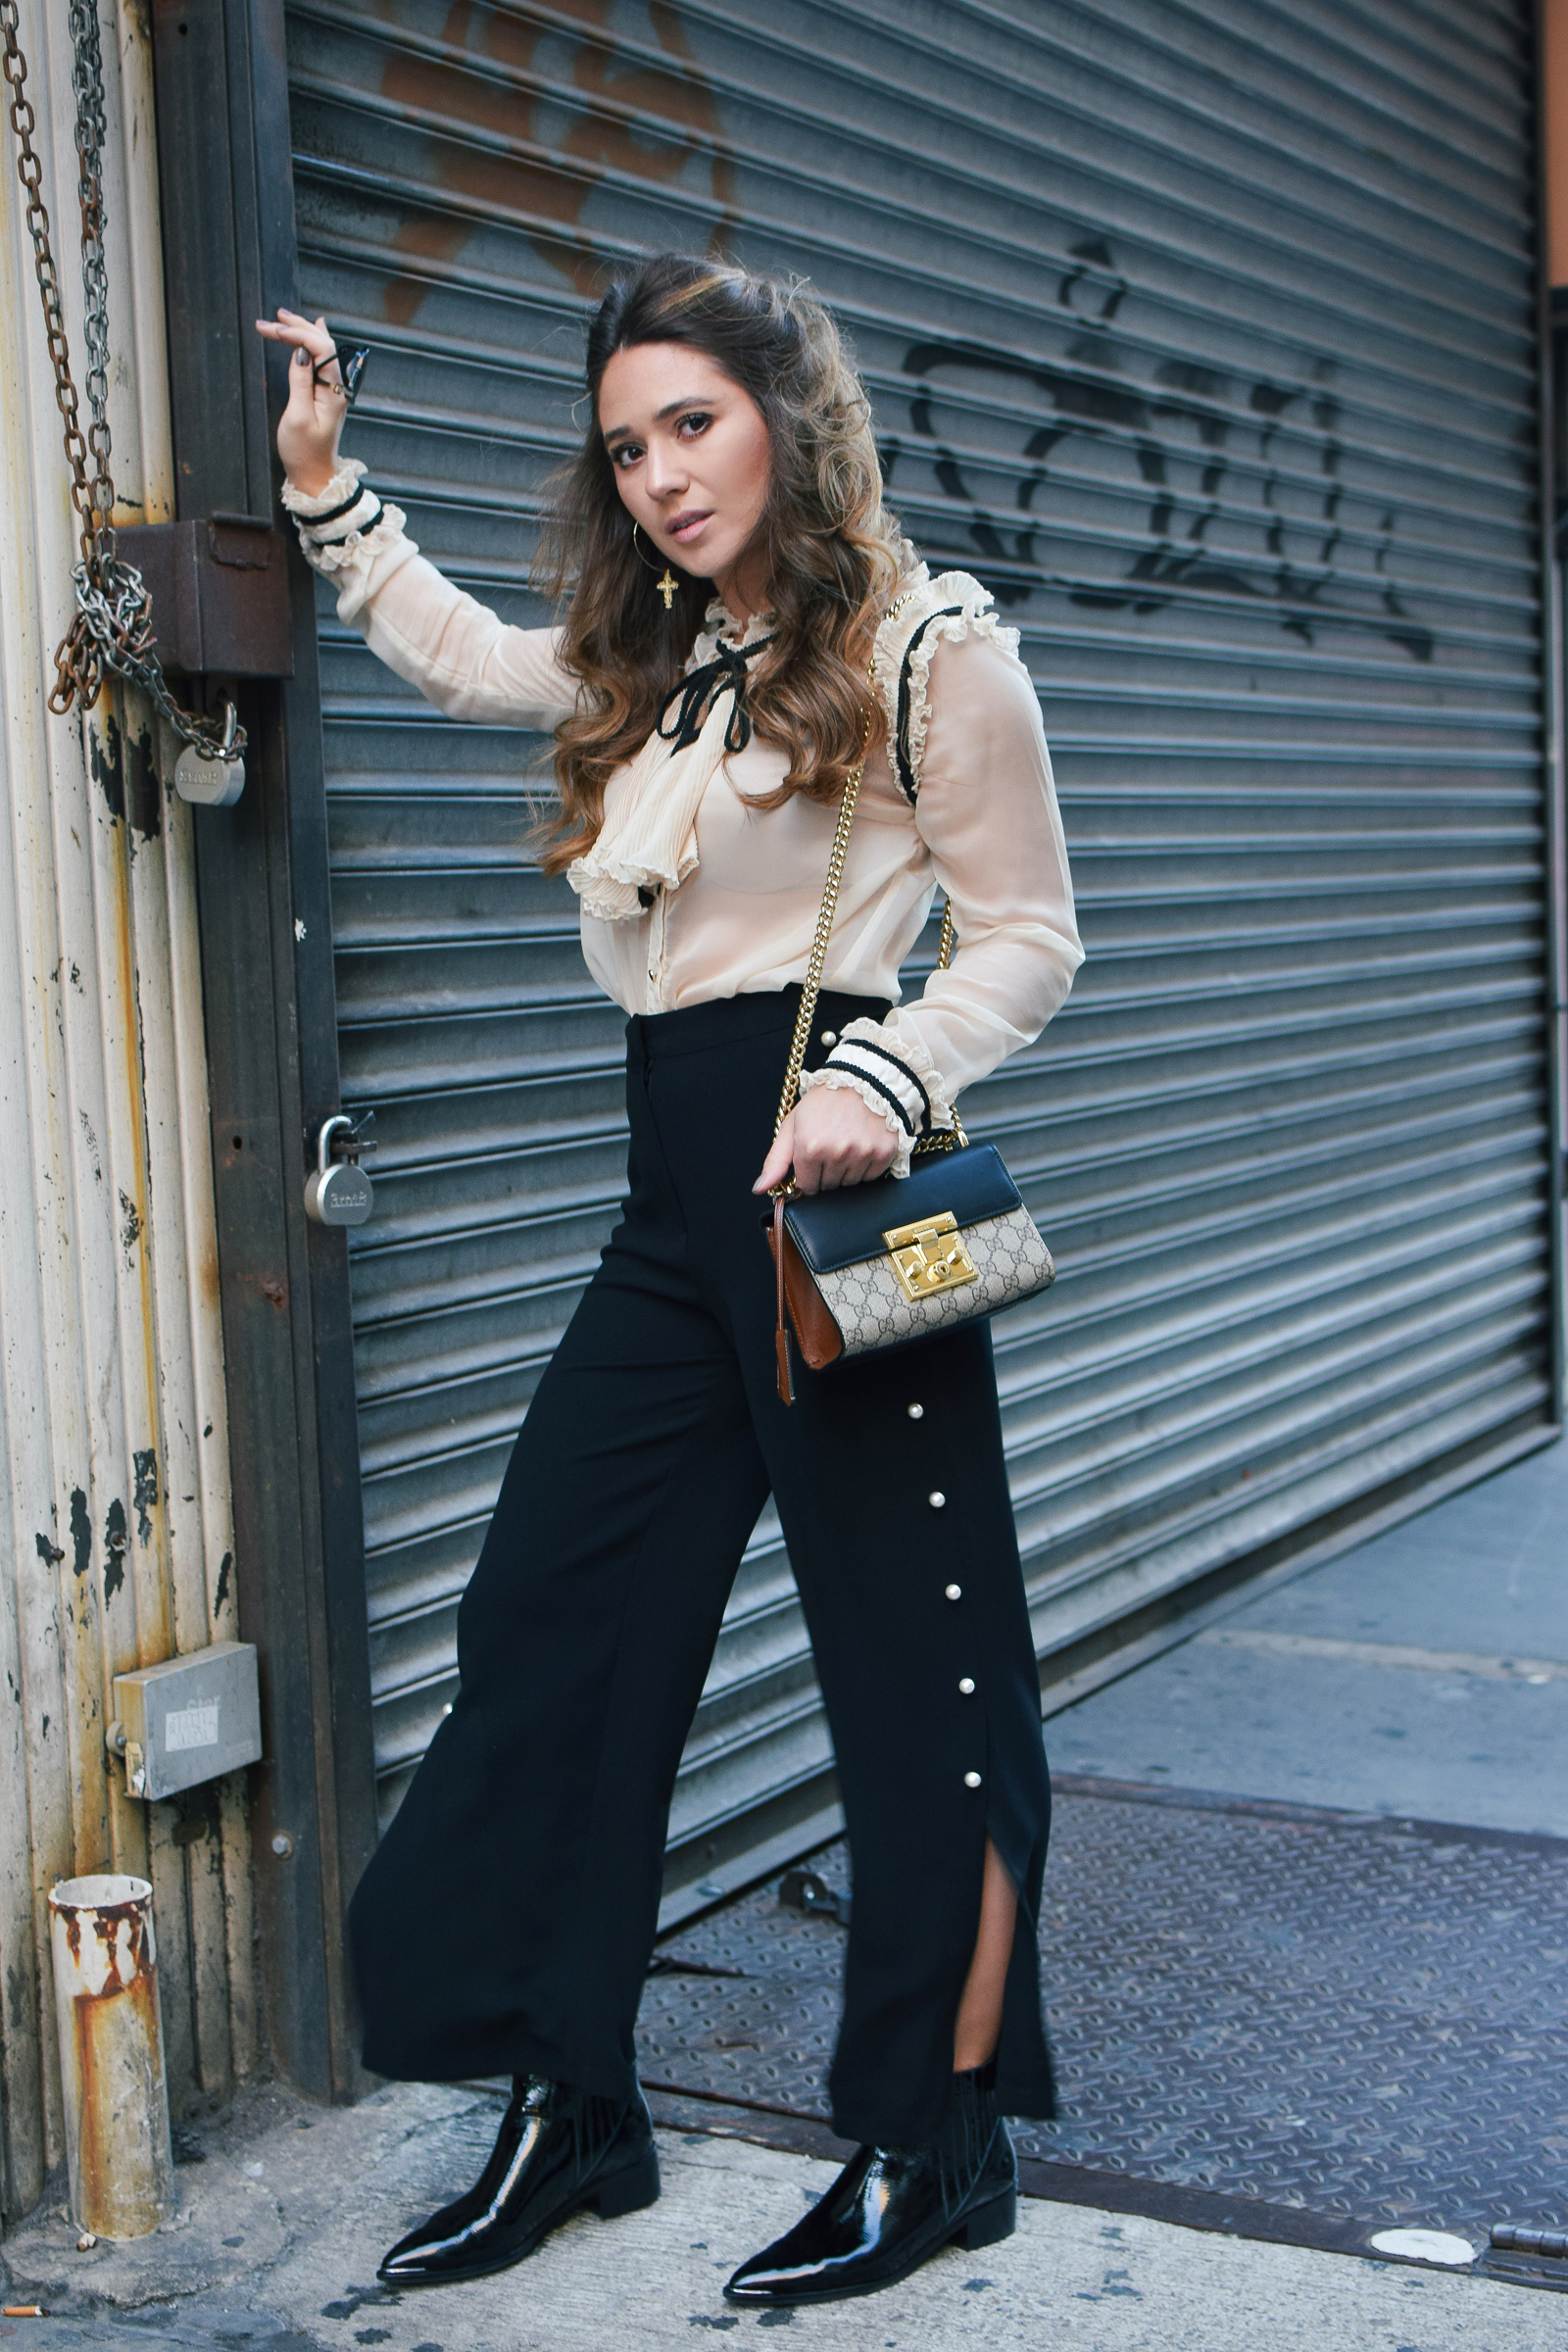 nyfw-streetstyle-outfit-pearl-trousers-ruffle-blouse-gucci-bag-fashion-week